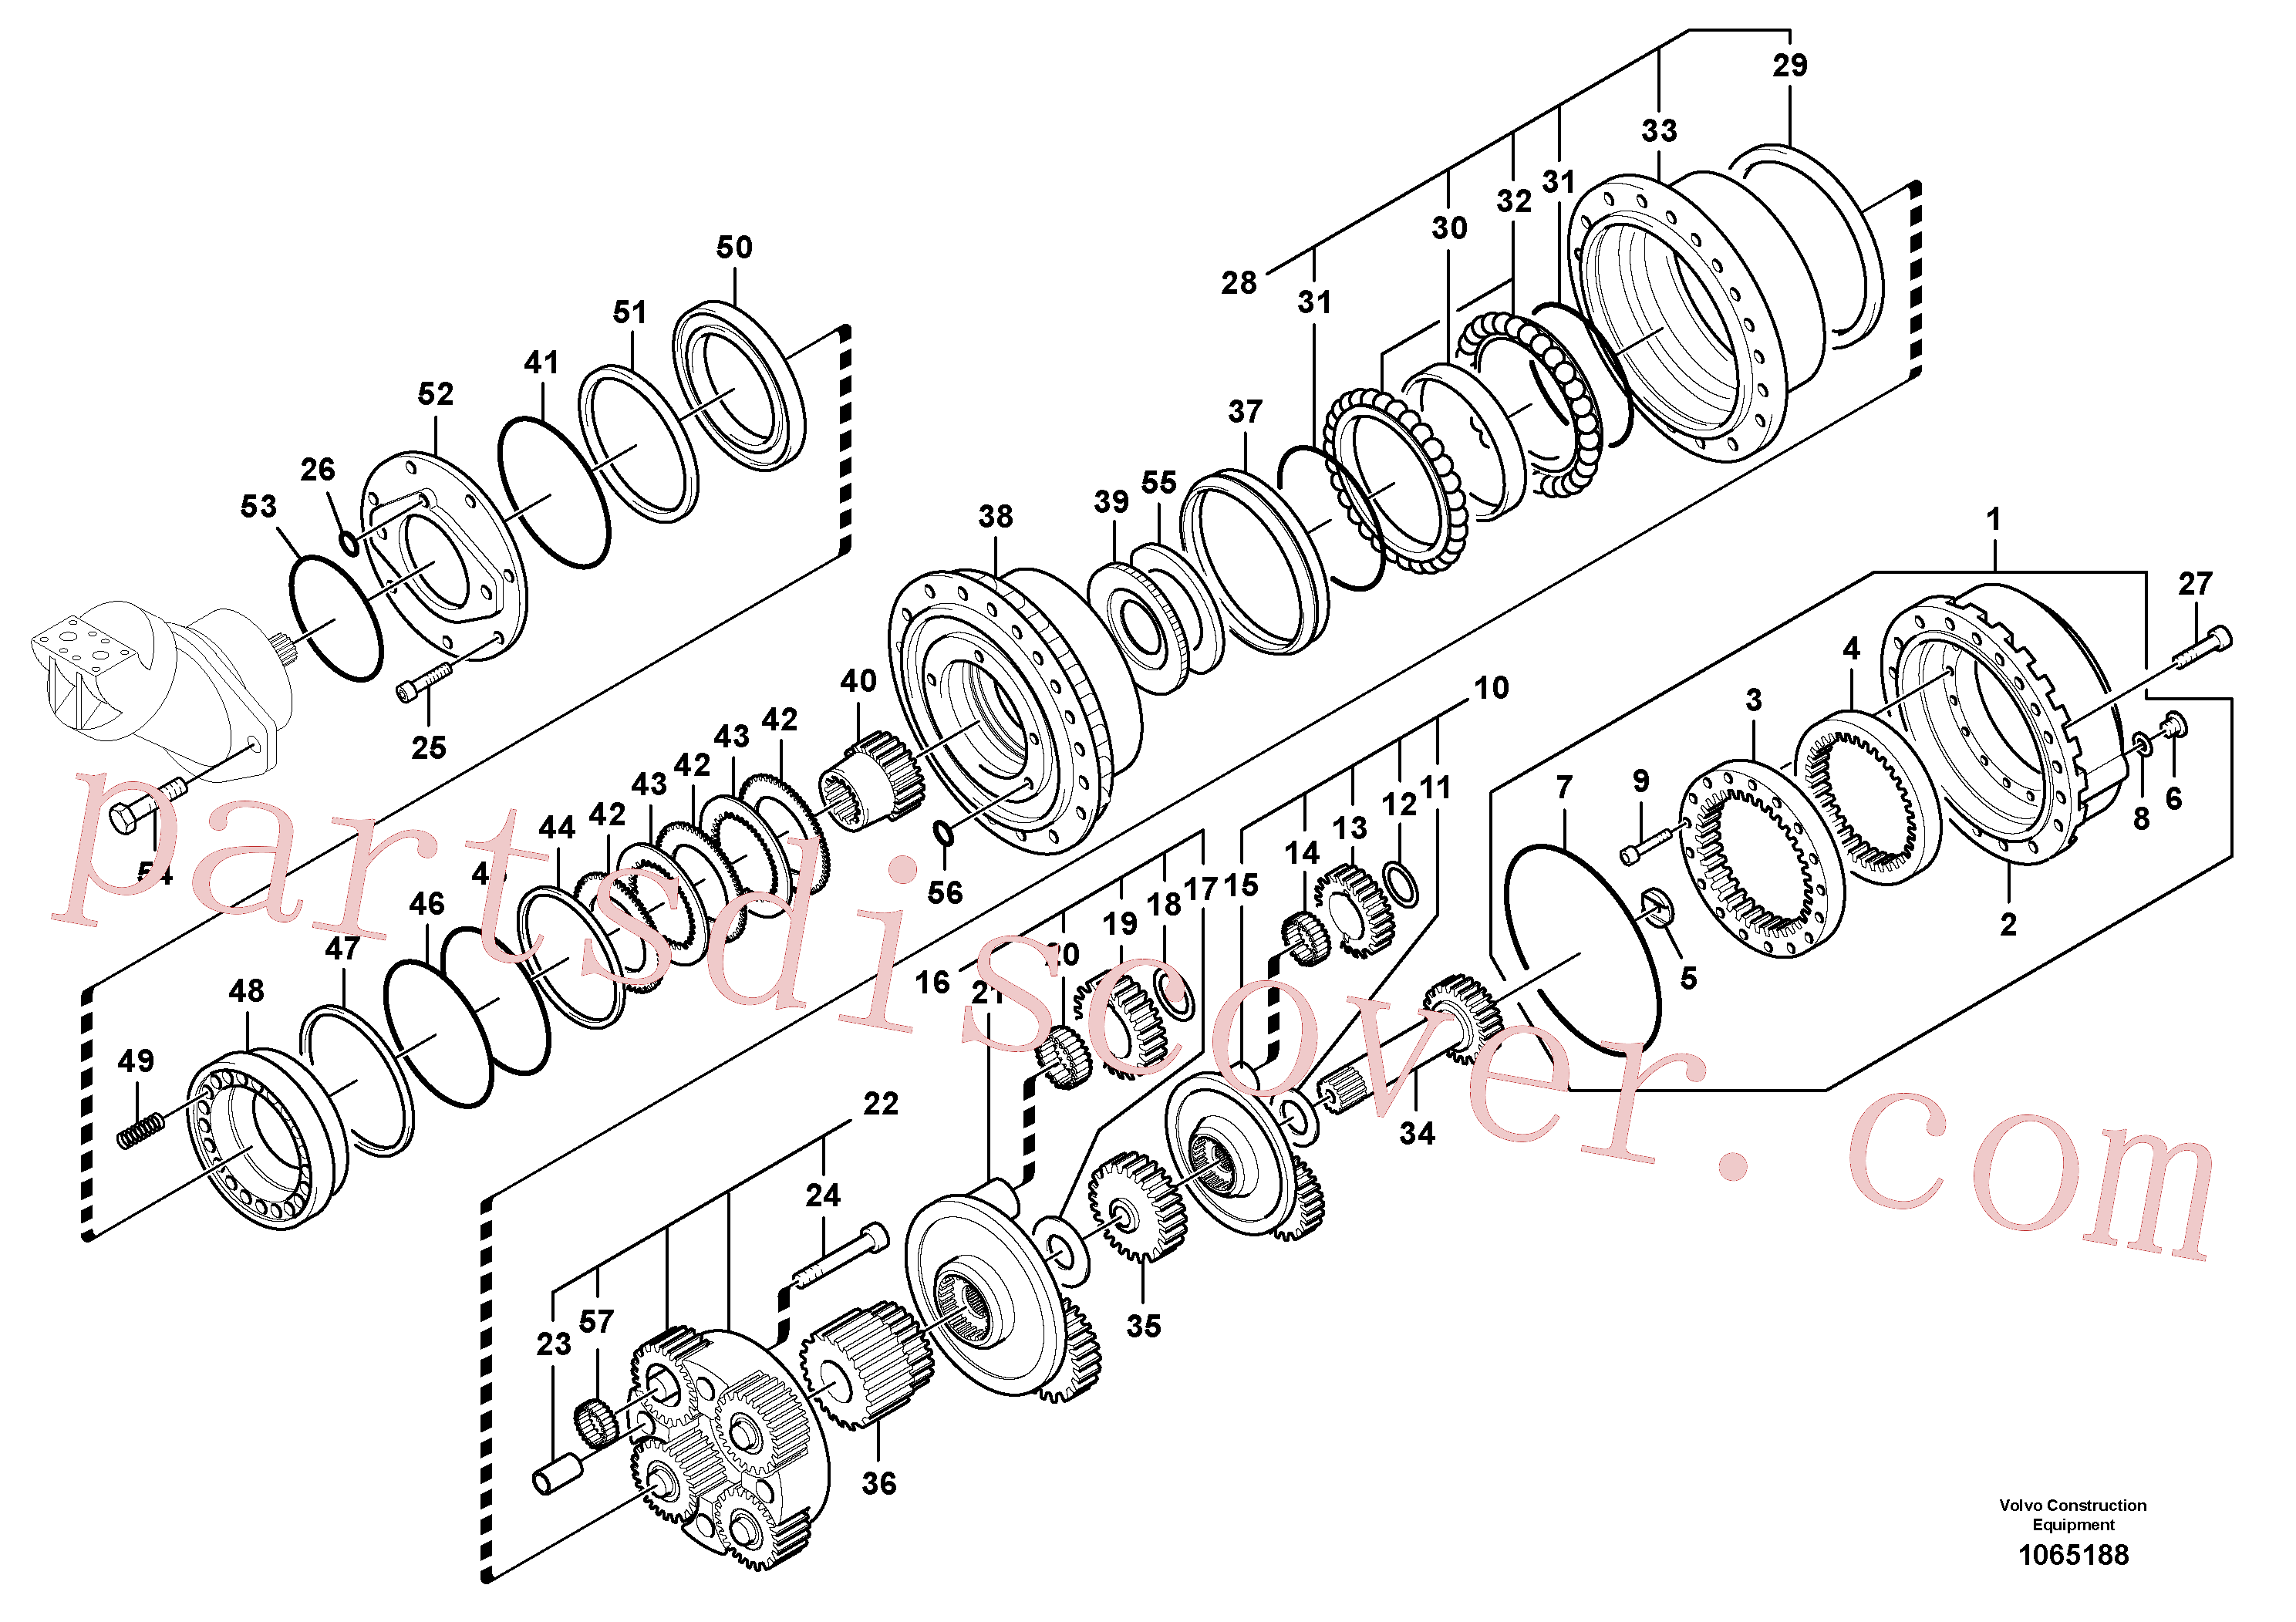 SA8230-22380 for Volvo Travel gearbox(1065188 assembly)